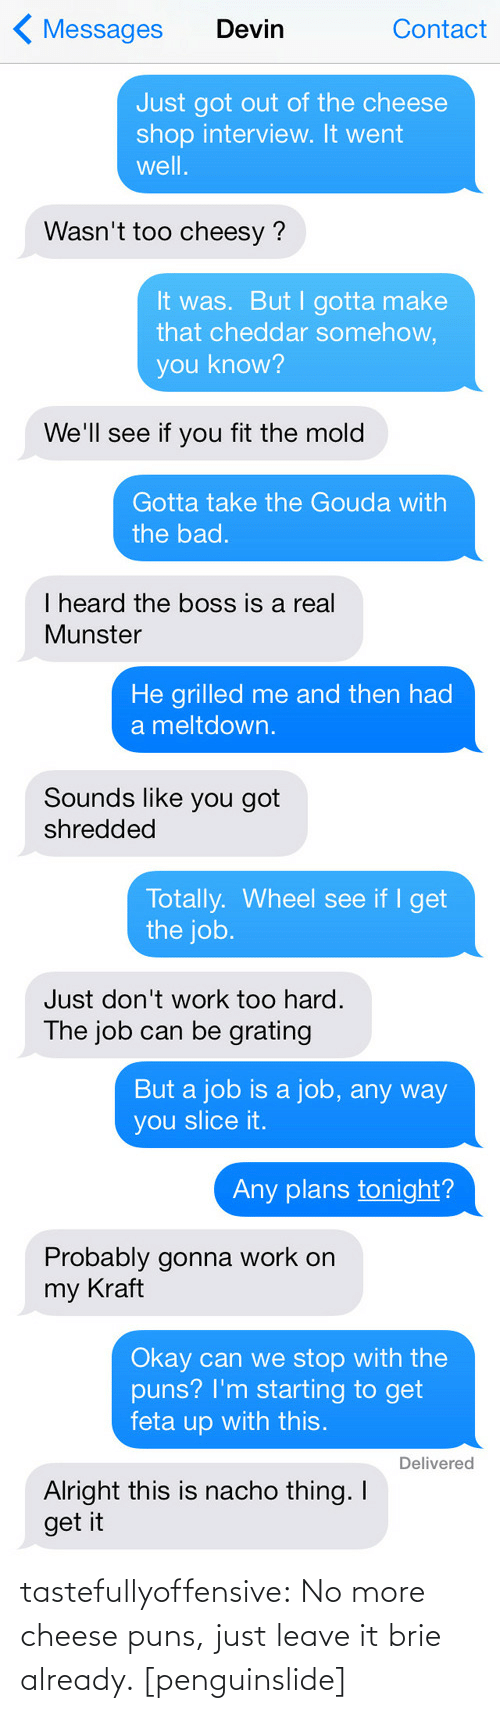 Bad, Puns, and Target: ( Messages  Contact  Devin  Just got out of the cheese  shop interview. It went  well.  Wasn't too cheesy ?  It was. But I gotta make  that cheddar somehow,  you know?  We'll see if you fit the mold  Gotta take the Gouda with  the bad.  I heard the boss is a real  Munster   He grilled me and then had  a meltdown.  Sounds like you got  shredded  Totally. Wheel see if I get  the job.  Just don't work too hard.  The job can be grating   But a job is a job, any way  you slice it.  Any plans tonight?  Probably gonna work on  my Kraft  Okay can we stop with the  puns? I'm starting to get  feta up with this.  Delivered  Alright this is nacho thing. I  get it tastefullyoffensive:  No more cheese puns, just leave it brie already. [penguinslide]